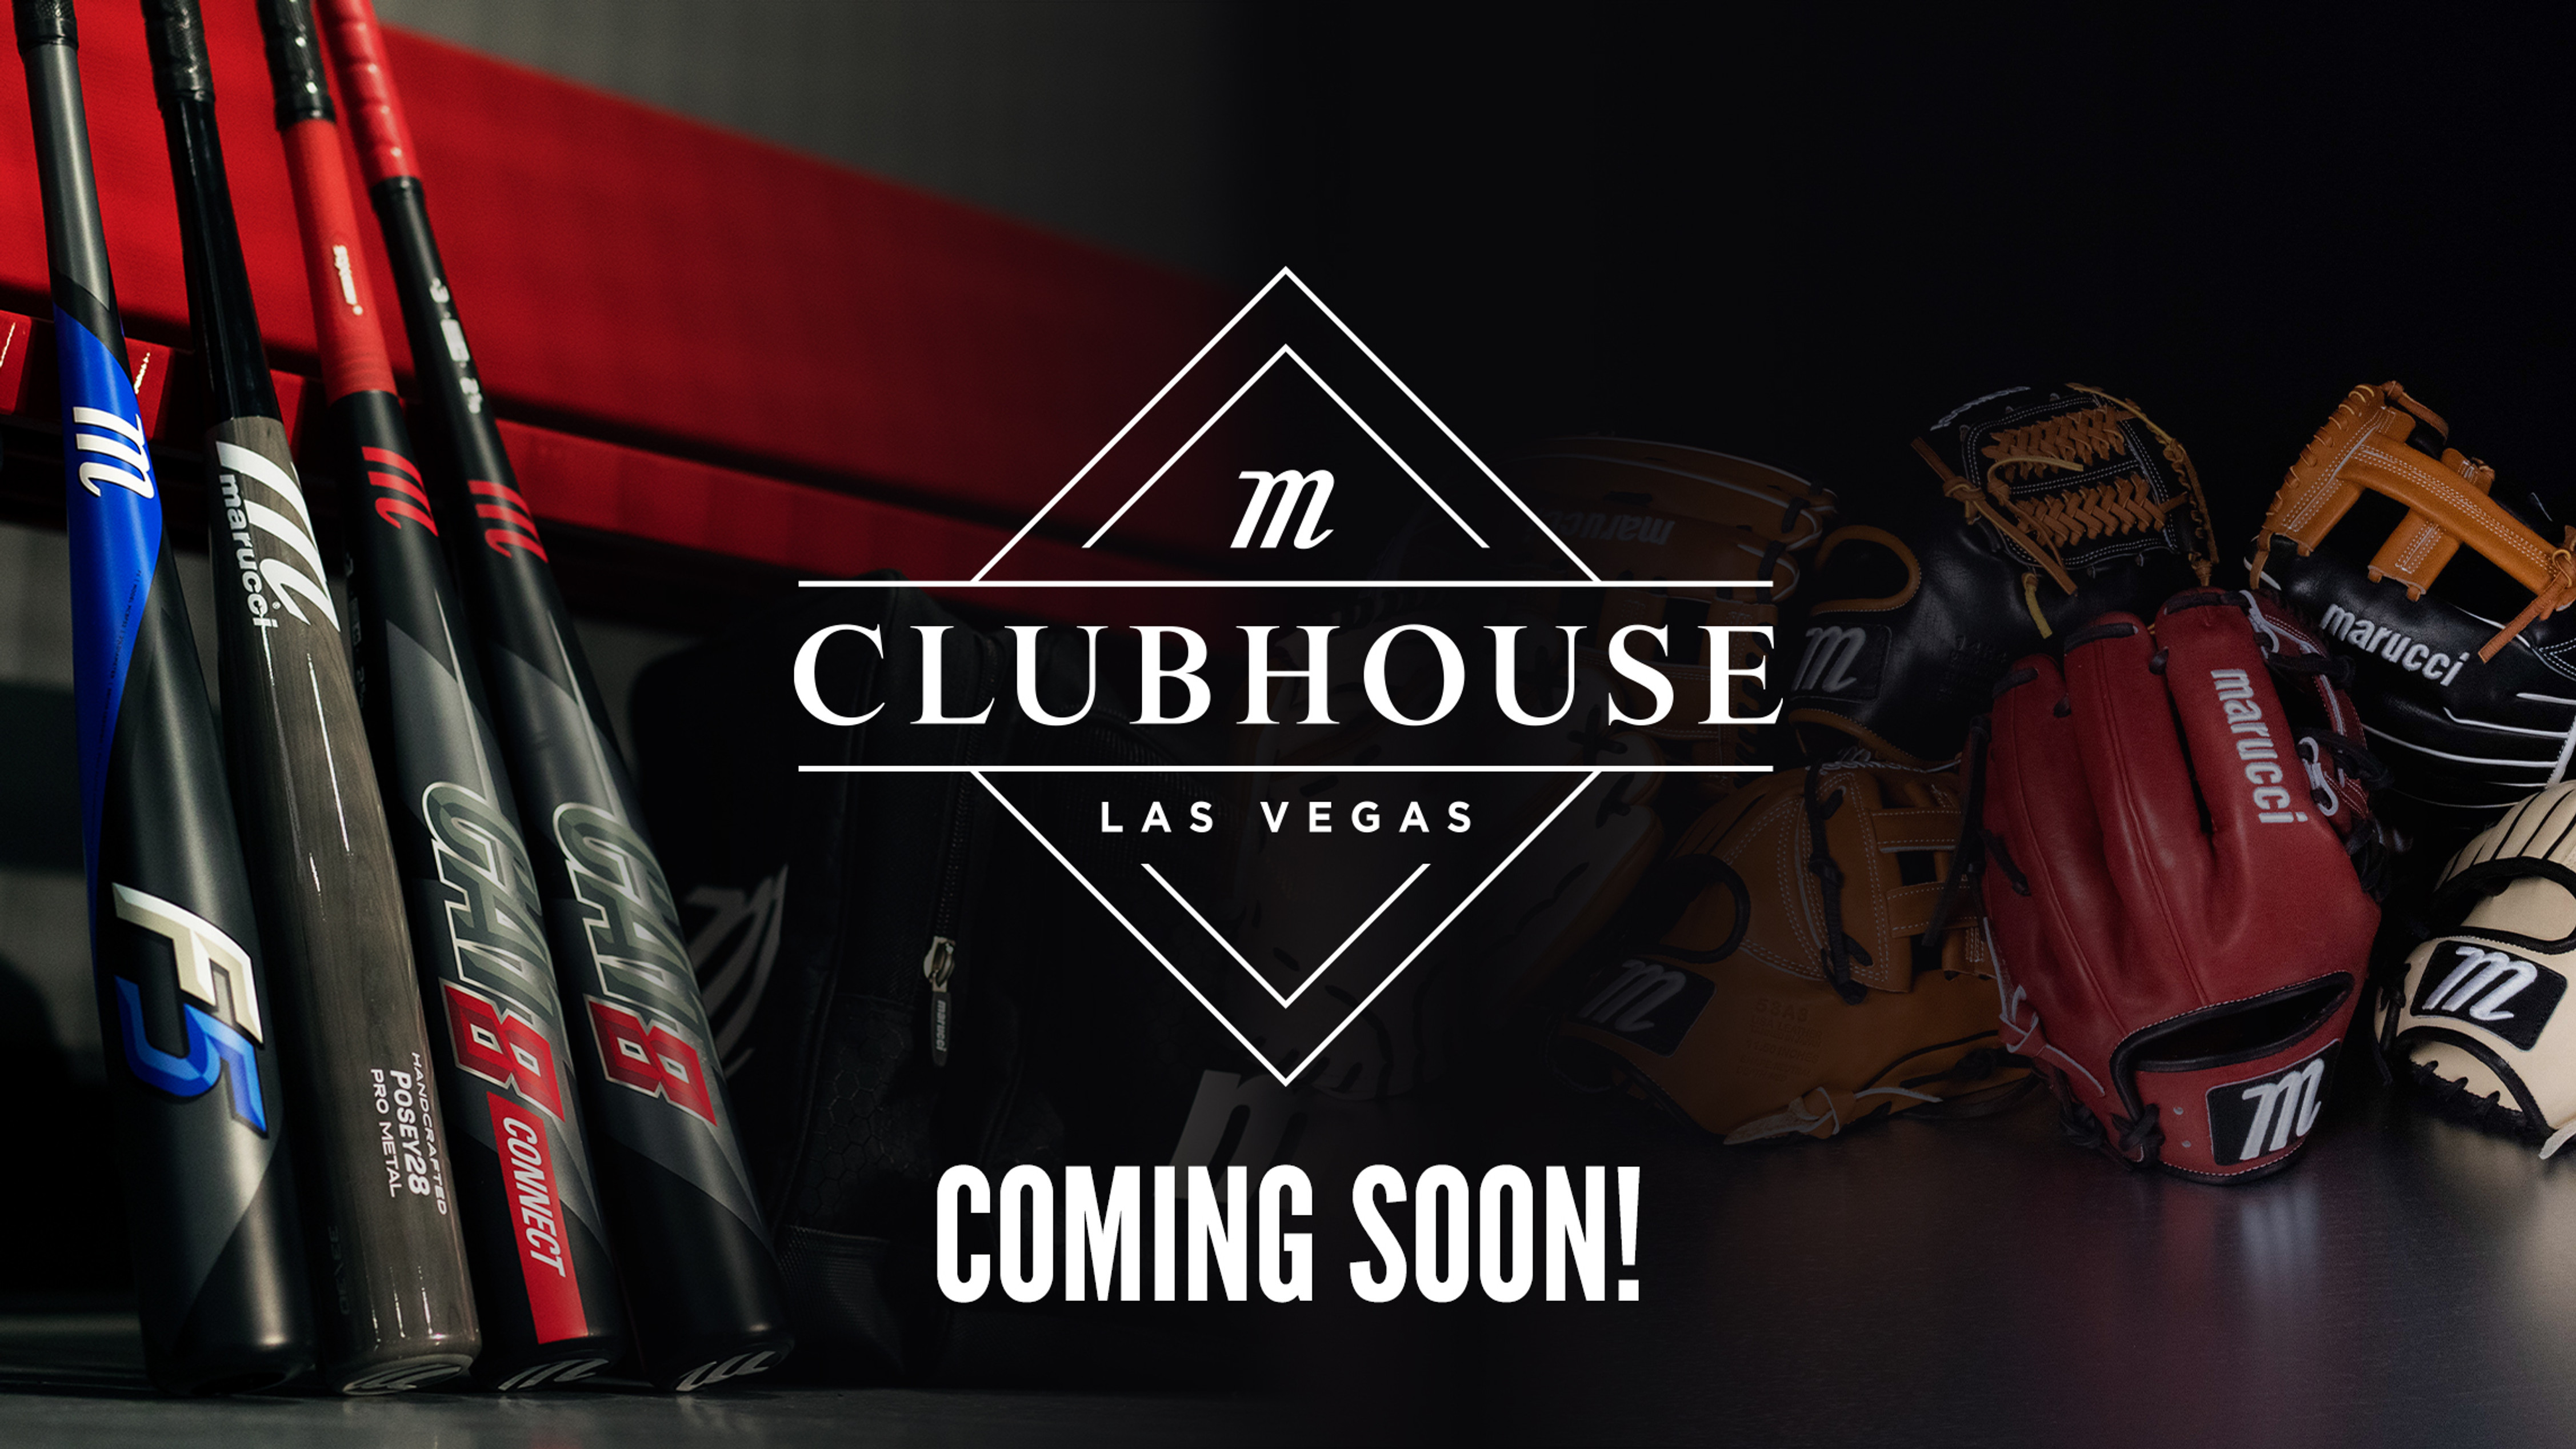 Marucci Clubhouse Expanding with Las Vegas Location